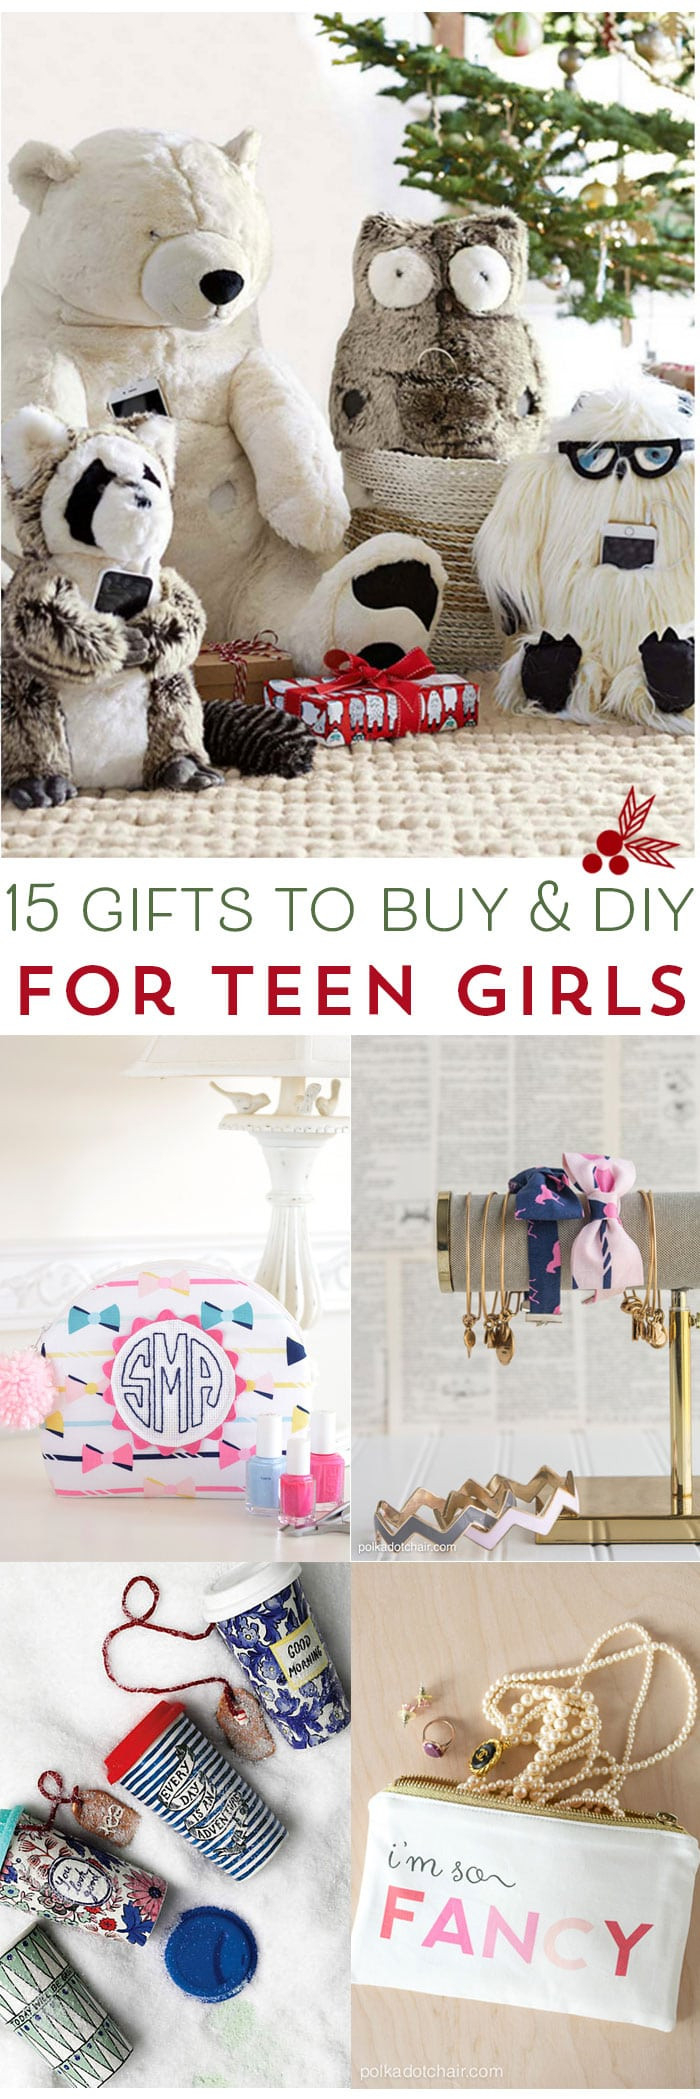 Best ideas about DIY Gifts For Girls . Save or Pin 15 Gifts for Teen Girls to DIY and Buy The Polka Dot Chair Now.